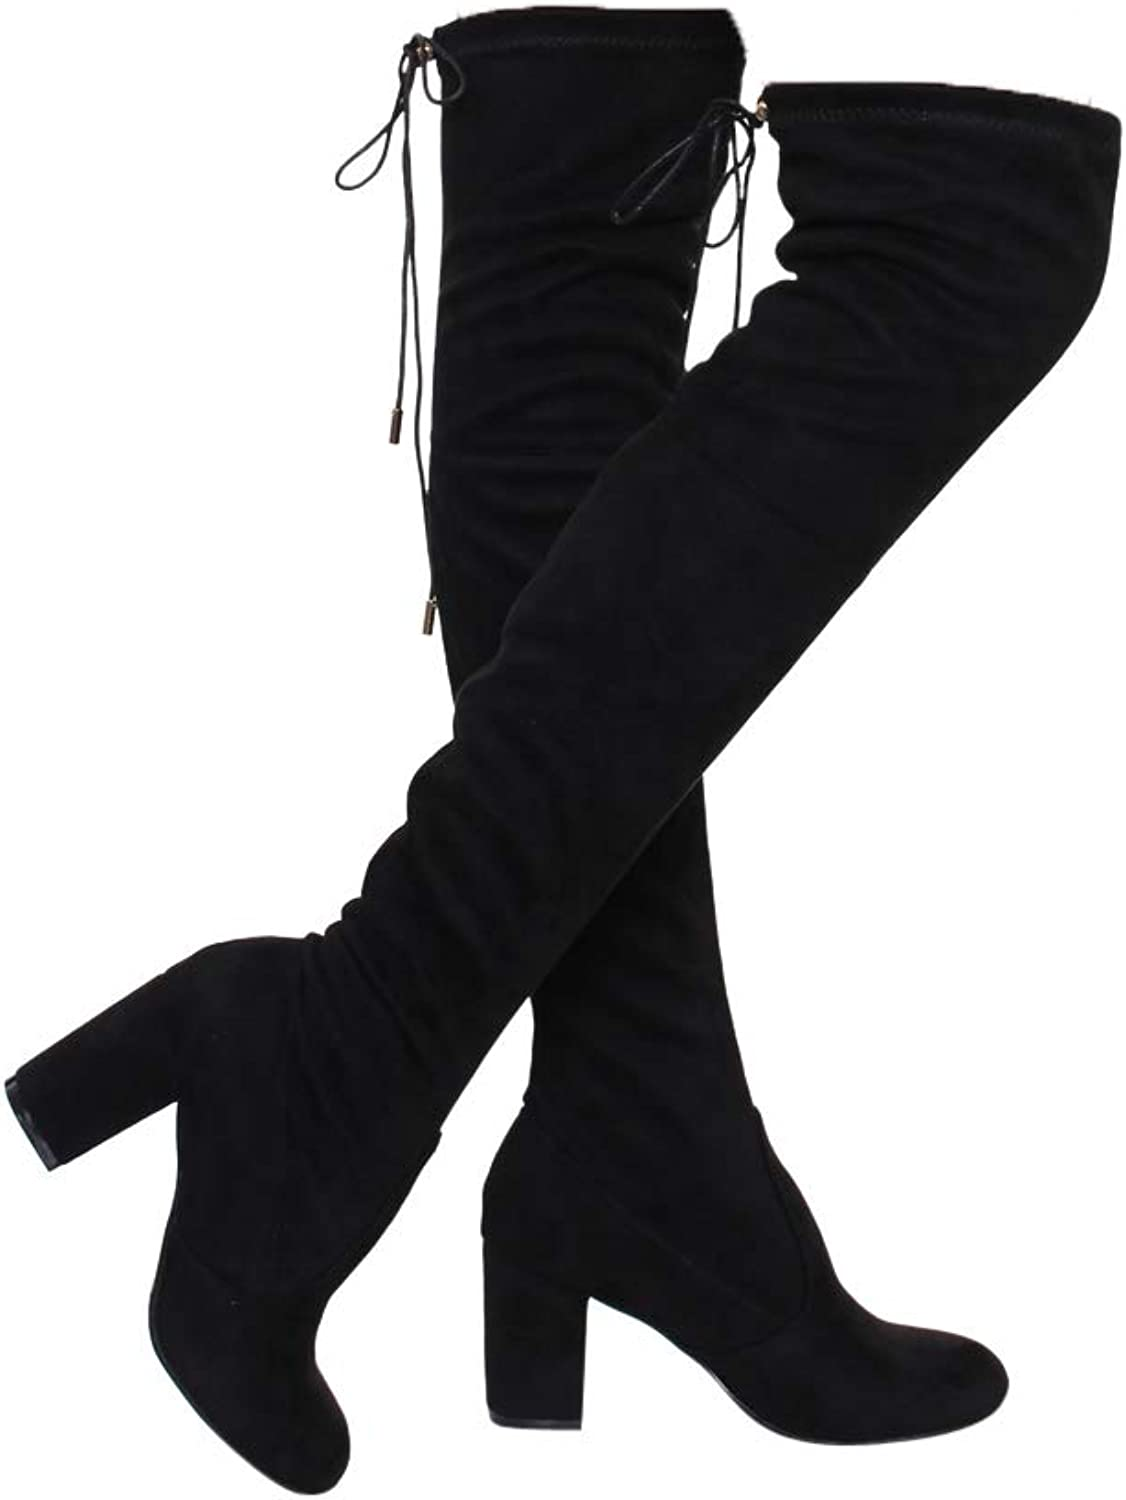 ShoBeautiful Women's Over The Knee Boots Stretchy Thigh High Chunky Block Heel Boots